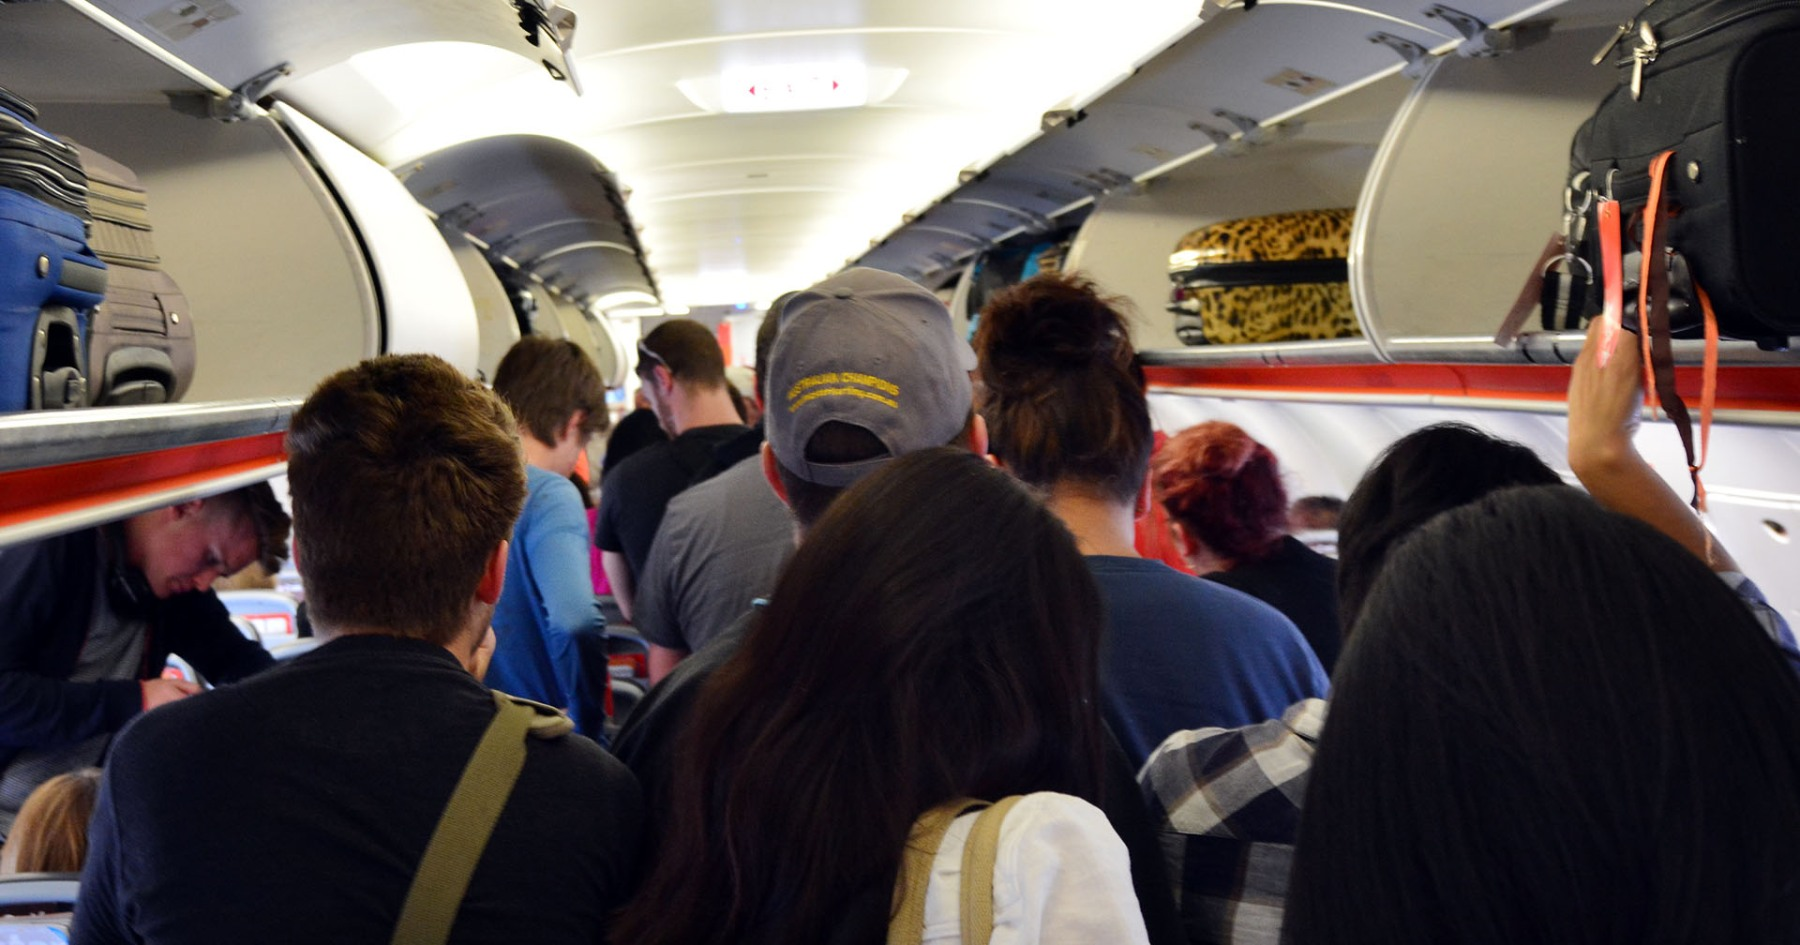 Travel Review Kingpin to Take on the Industry You Hate Most: Airlines